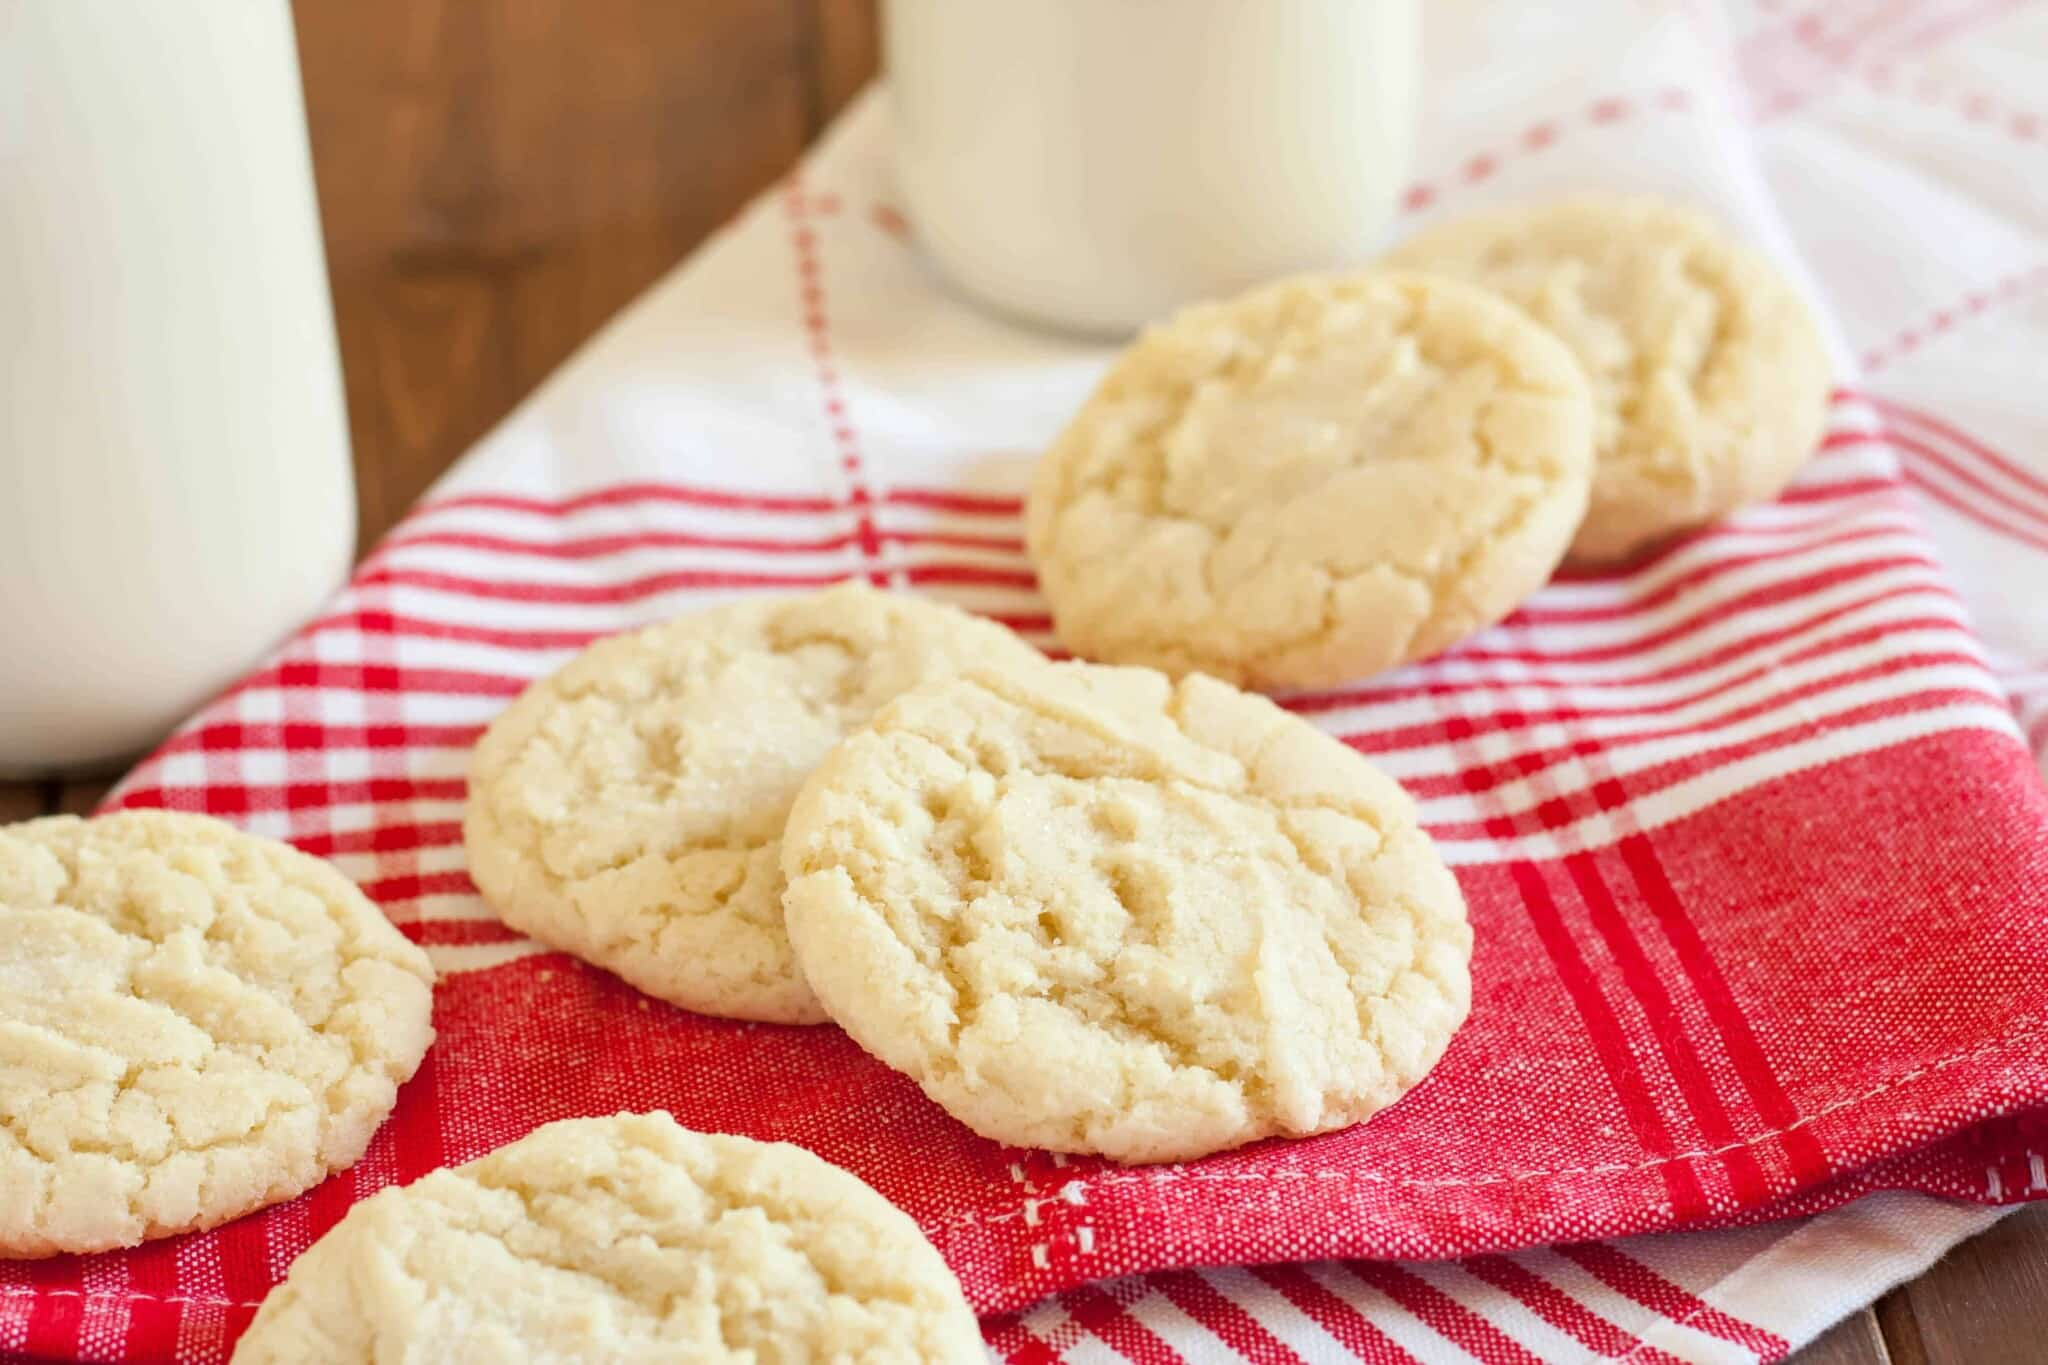 drop gluten free sugar cookies on a red and white striped napkin with a bottle of milk in the background